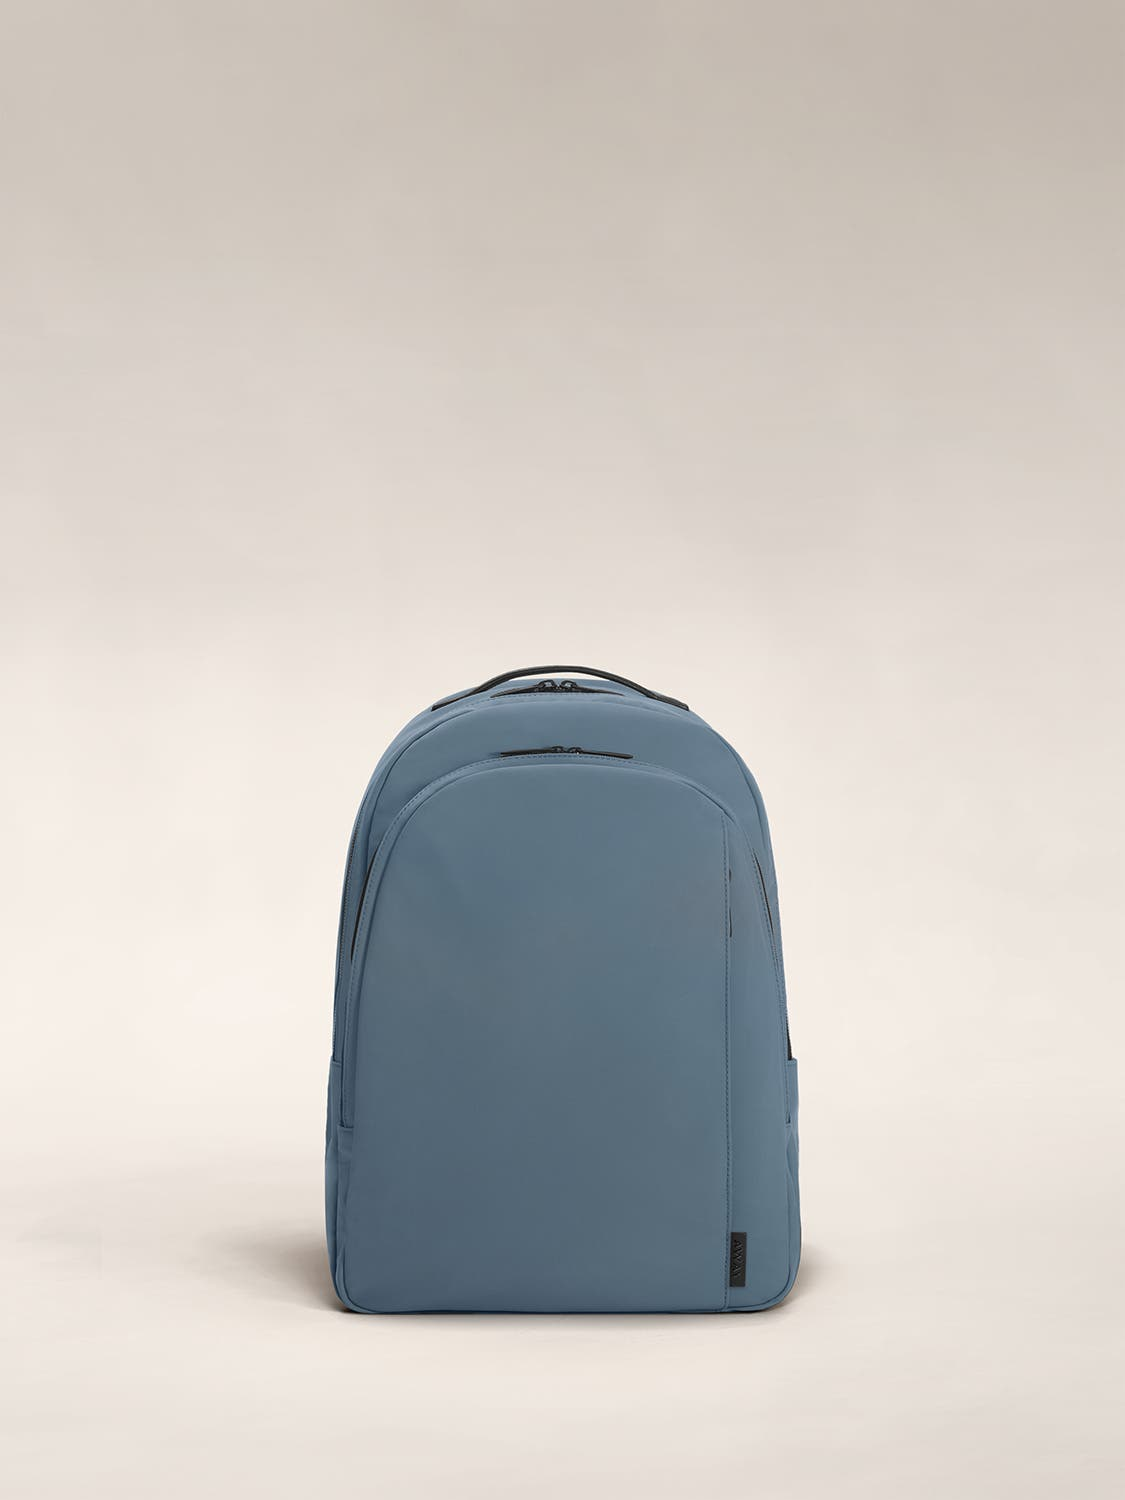 Coast blue color backpack with one large zip compartment and one small one.